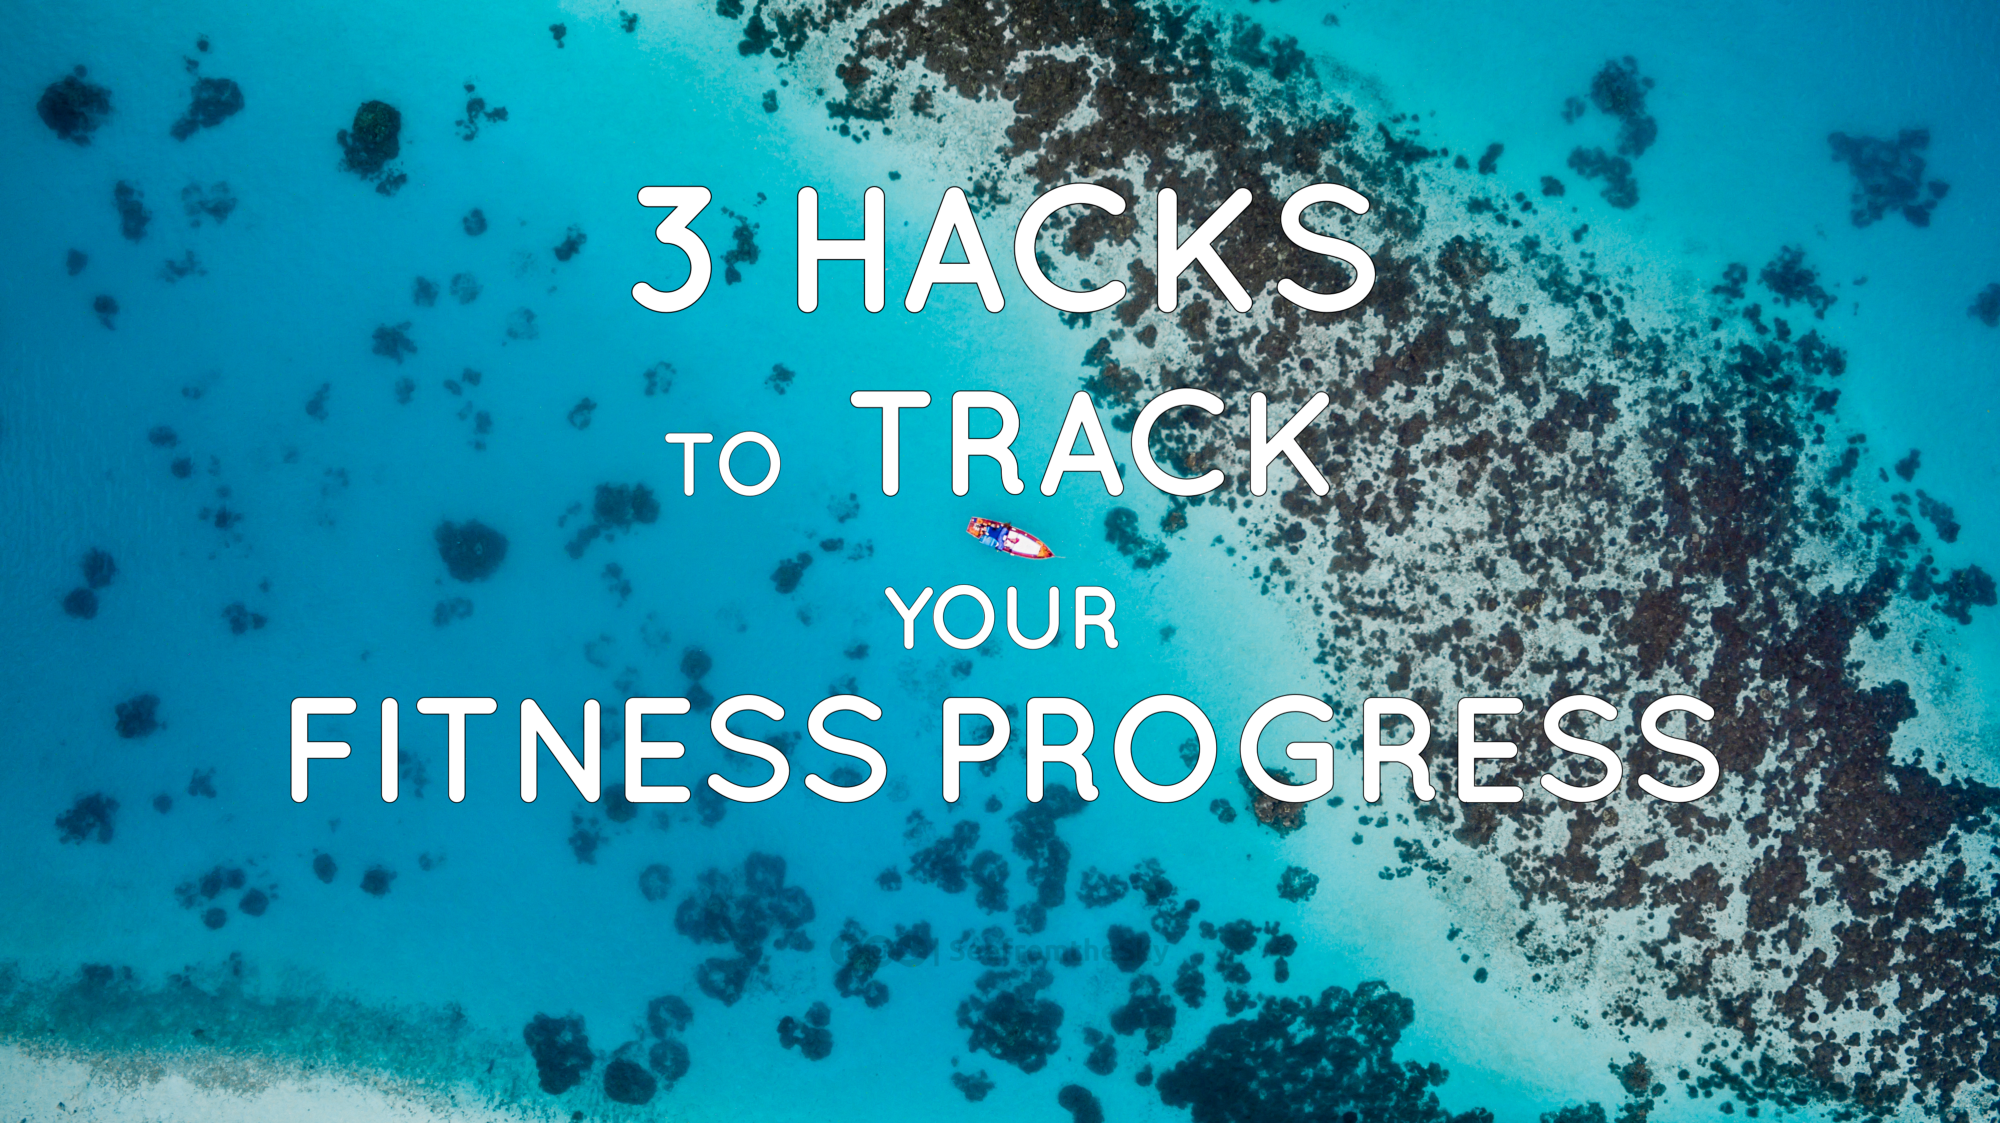 3 hacks to track your fitness progress feverfit